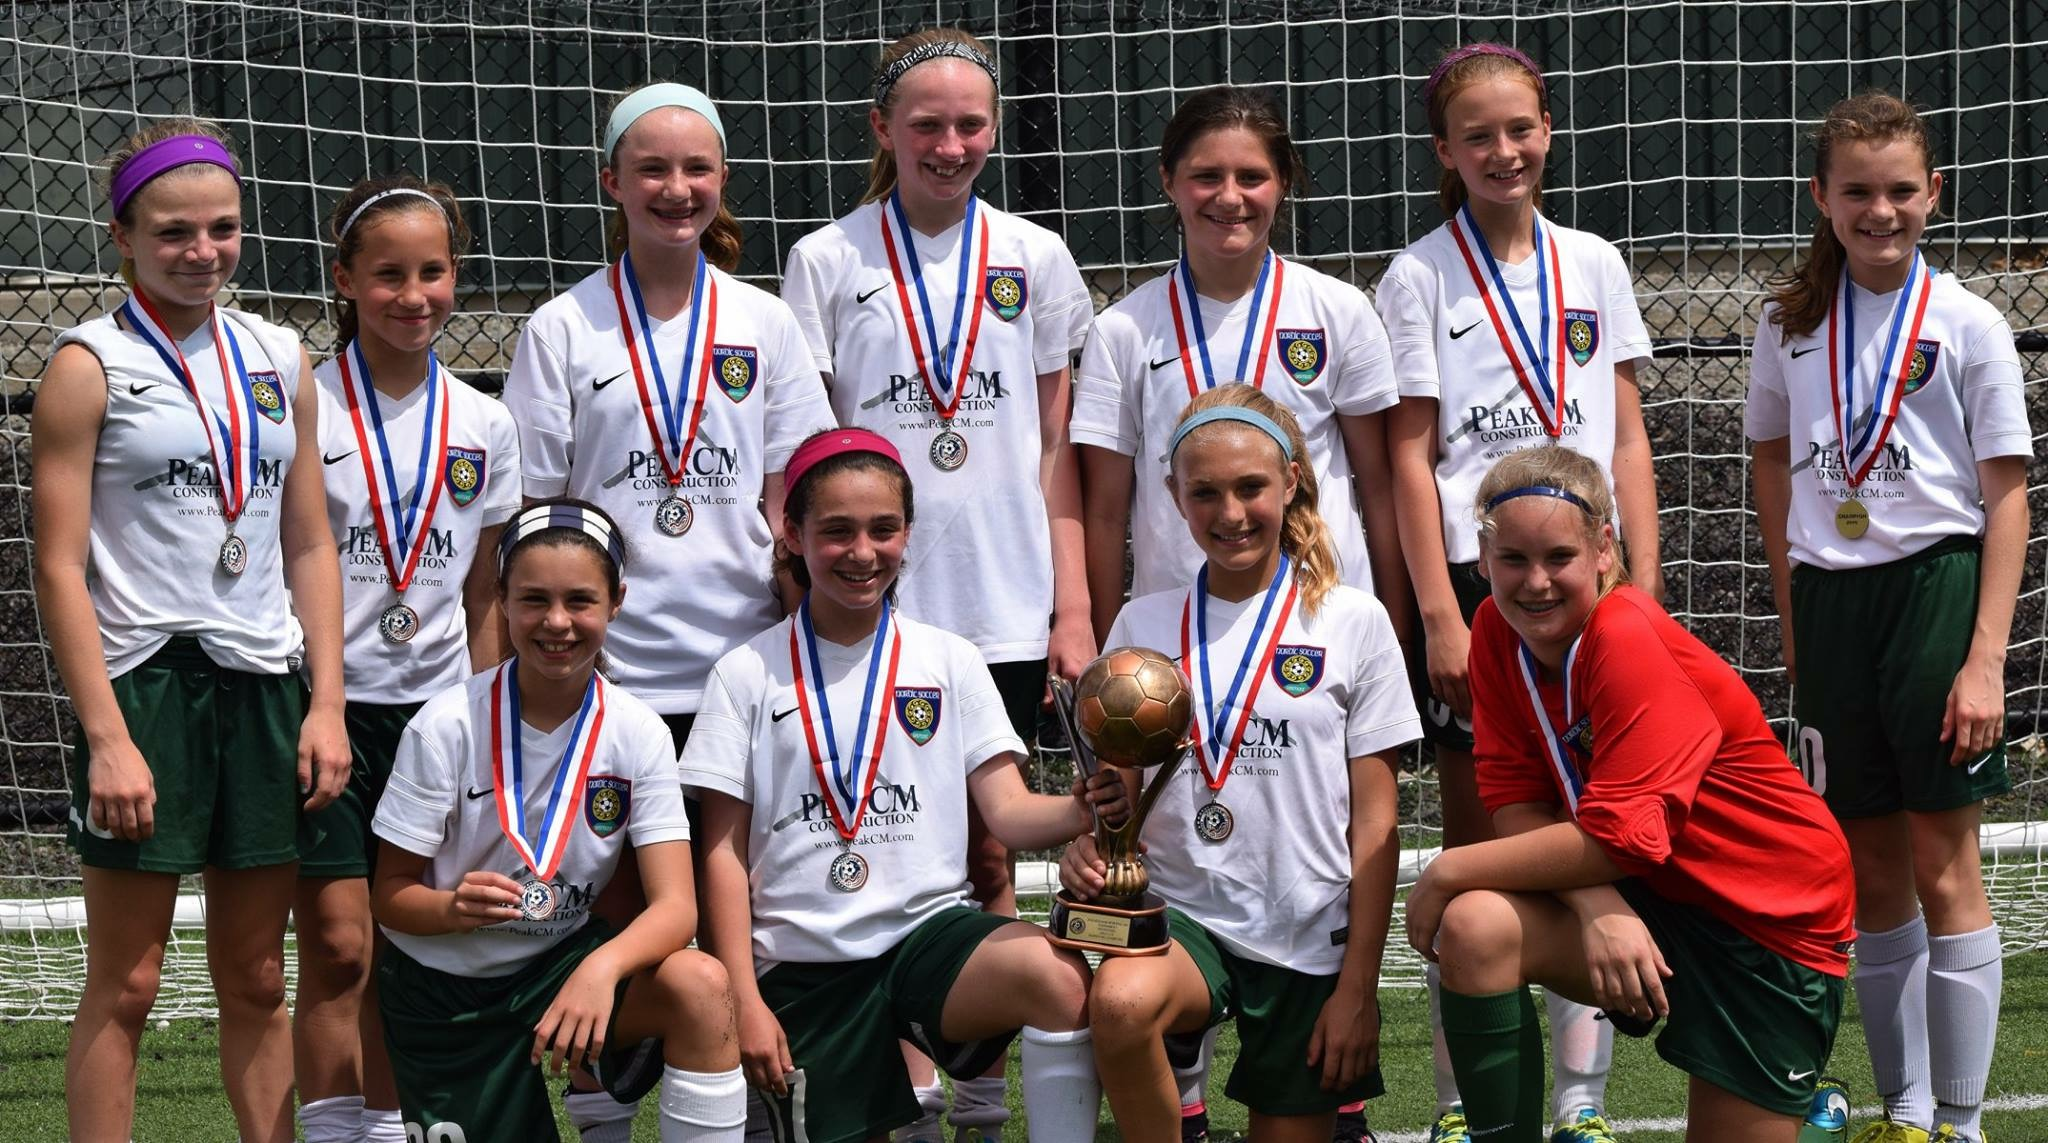 Congrats to our U12GP - Needham Tournament Champions!